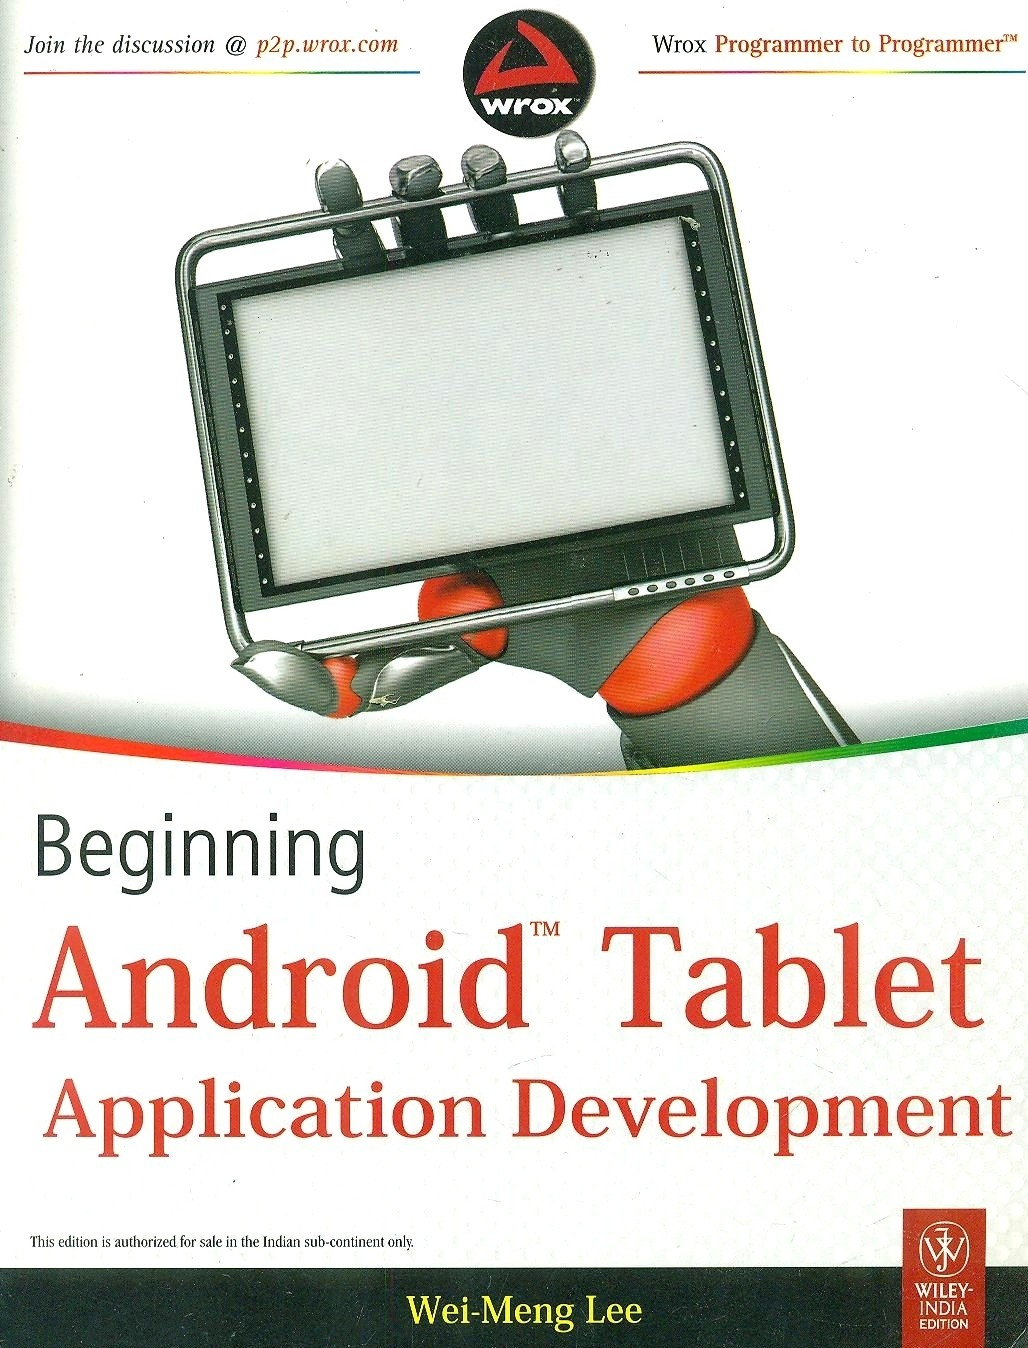 android wrox programmer application development Mobile programmer books, ebooks -- iphone and ipod touch programming, android application development, ubuntu mobile development, free download code & more.